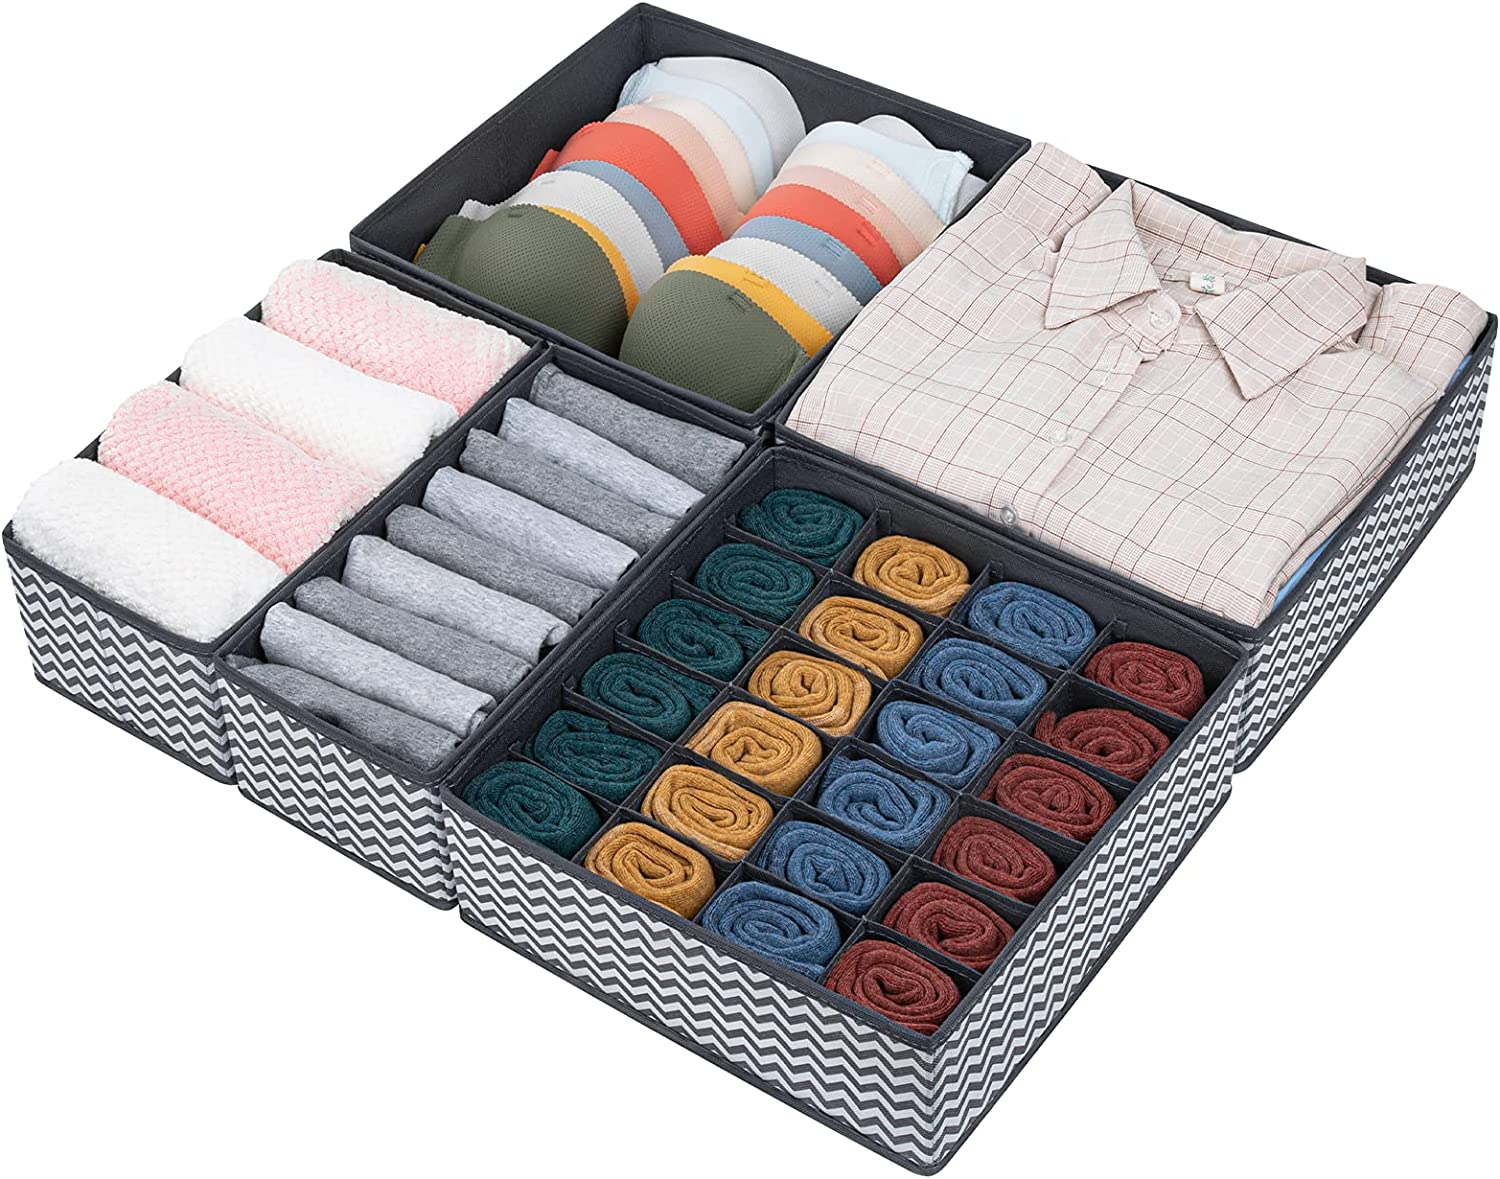 DIMJ Underwear Drawer Organizers, 5 Pcs Foldable Sock and Underwear Drawer Organizer Divider, Closet Fabric Organizers and Storage Drawer Organizer for Underwear, Socks, Bras and Clothes